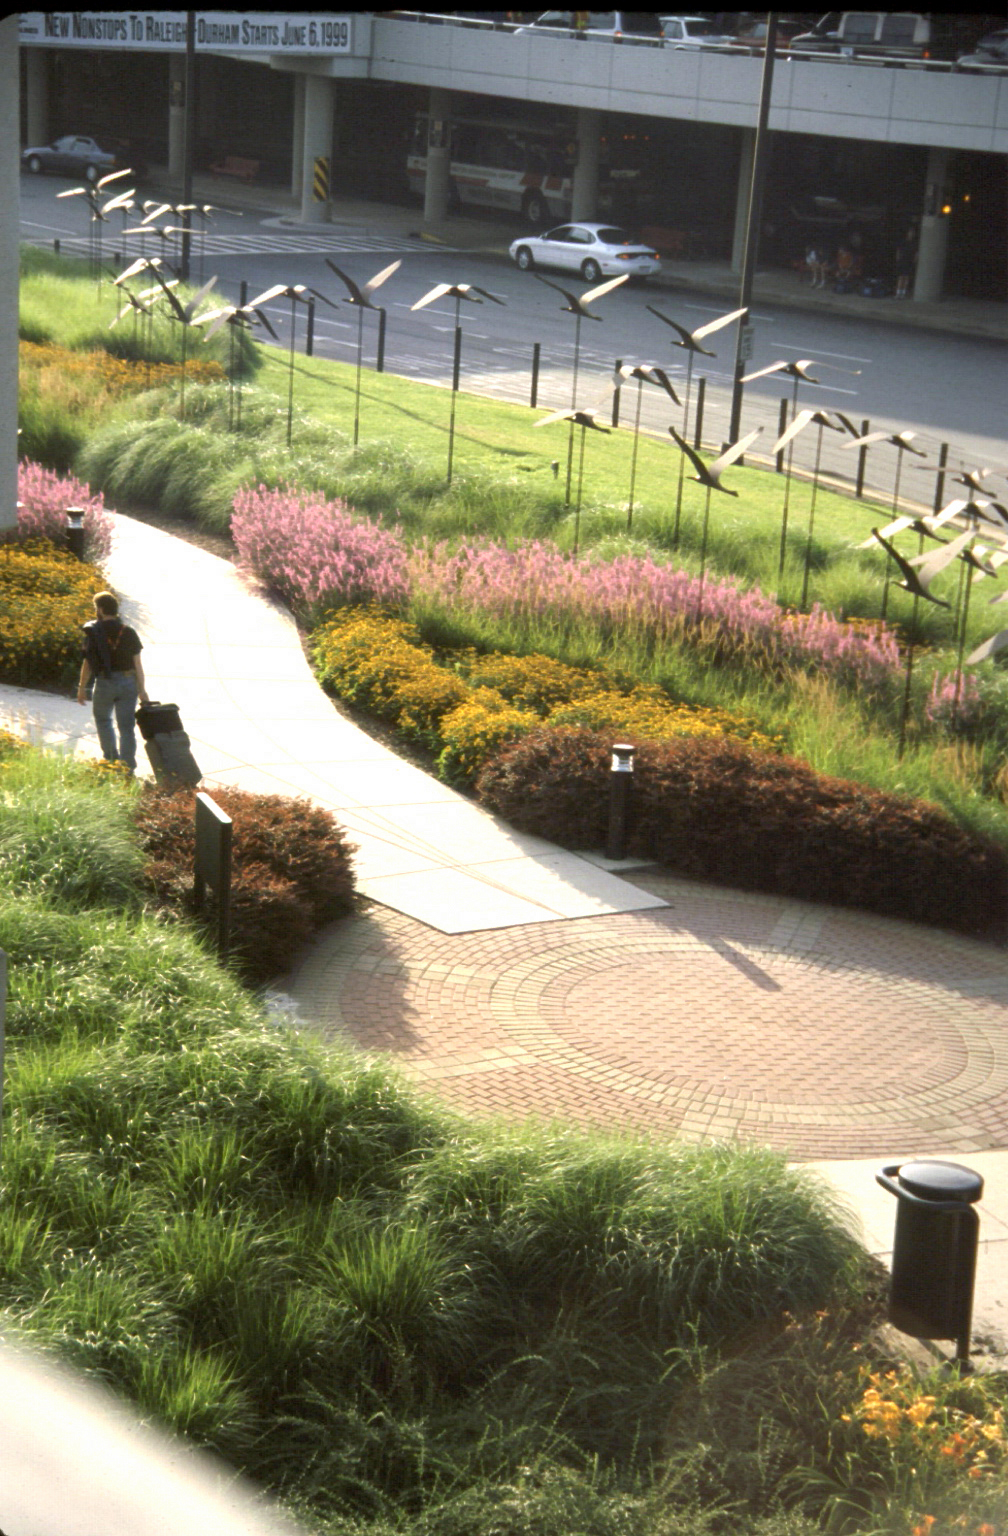 Project Location: Linthicum, MD  Completion: 1989  Primary Material Palette: corten steel, concrete, perennials  Photos By: Graham Landscape Architecture  Awards: Merit Award, American Society of Landscape Architects Maryland Chapter, 1993 Landscape Award, inform Magazine, 1995